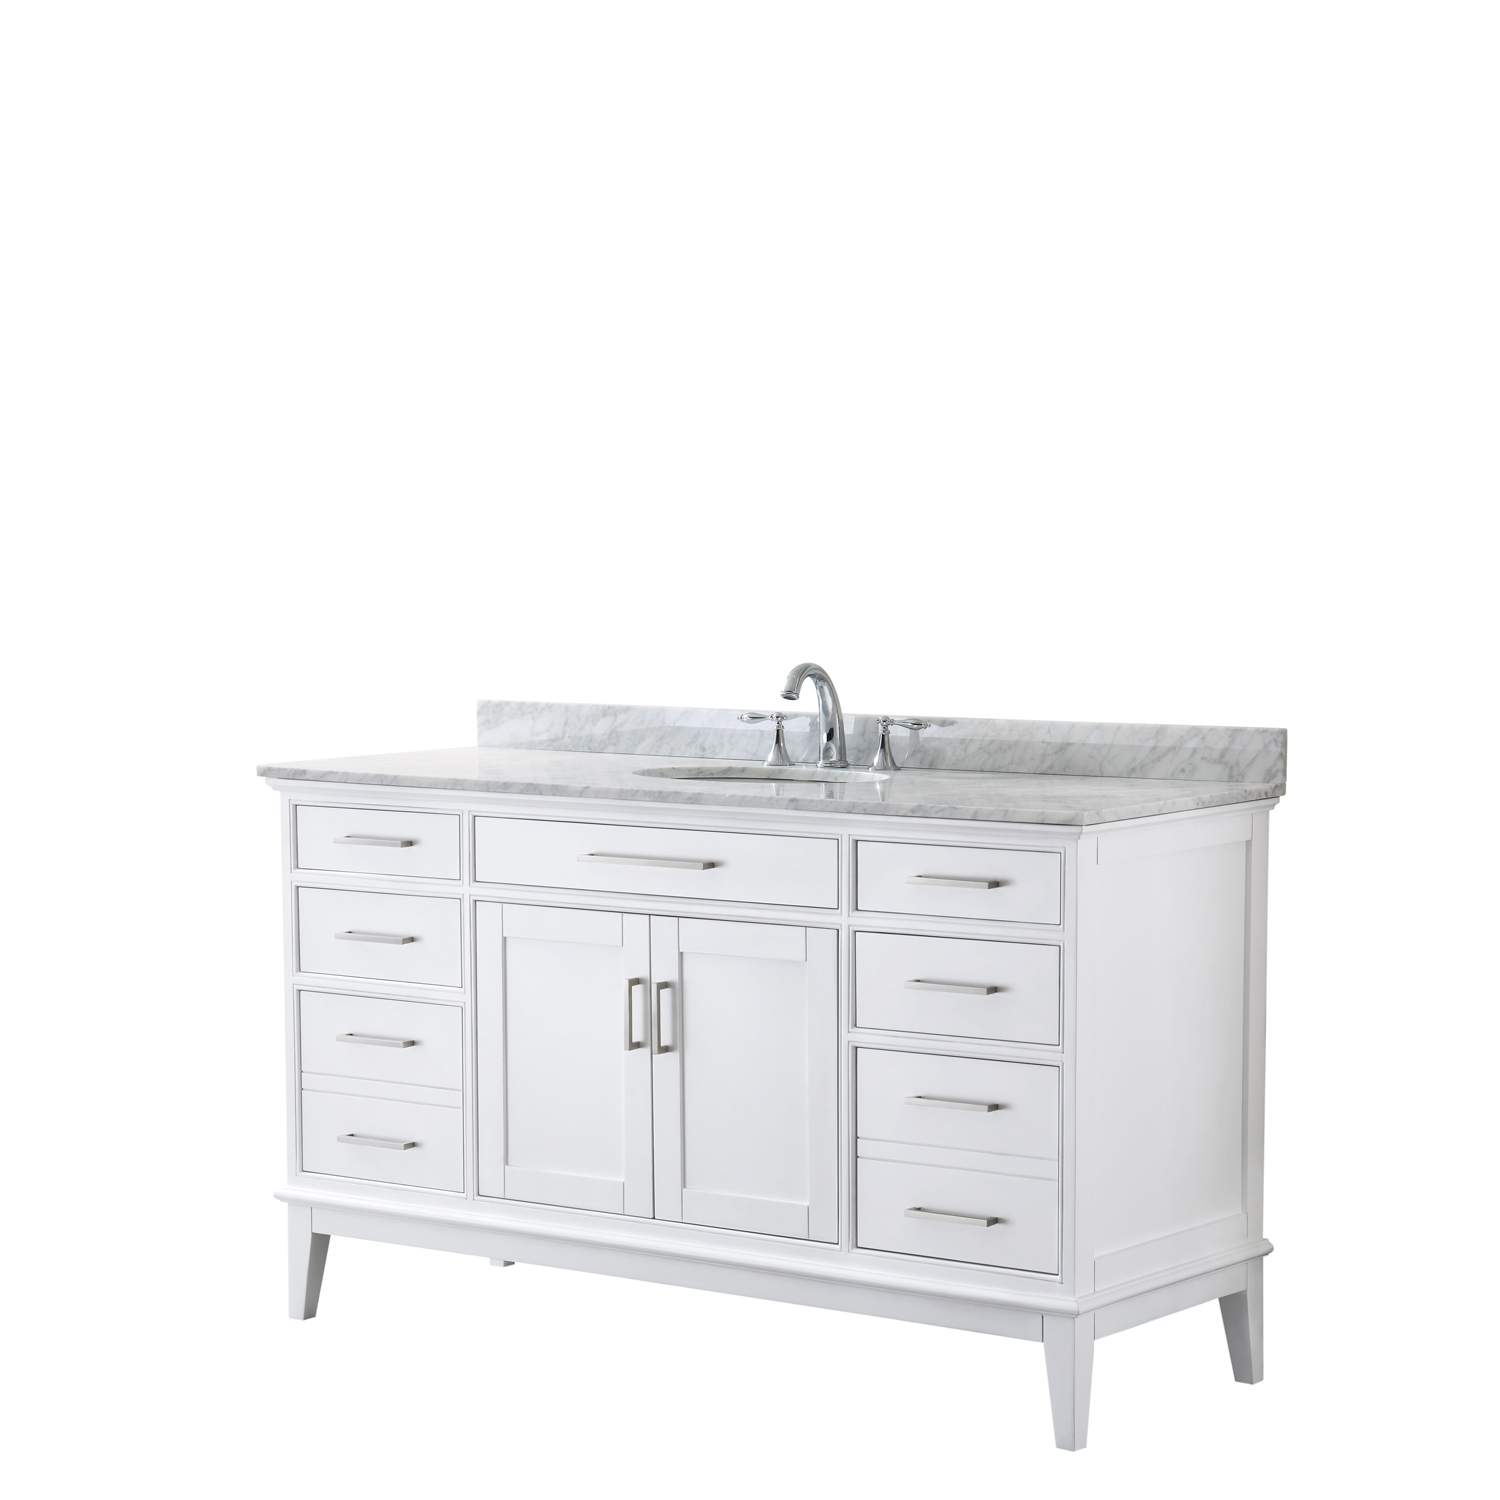 """Contemporary 60"""" Single Bathroom Vanity in White, White Carrara Marble Countertop with Undermount Sink, and Mirror Options"""